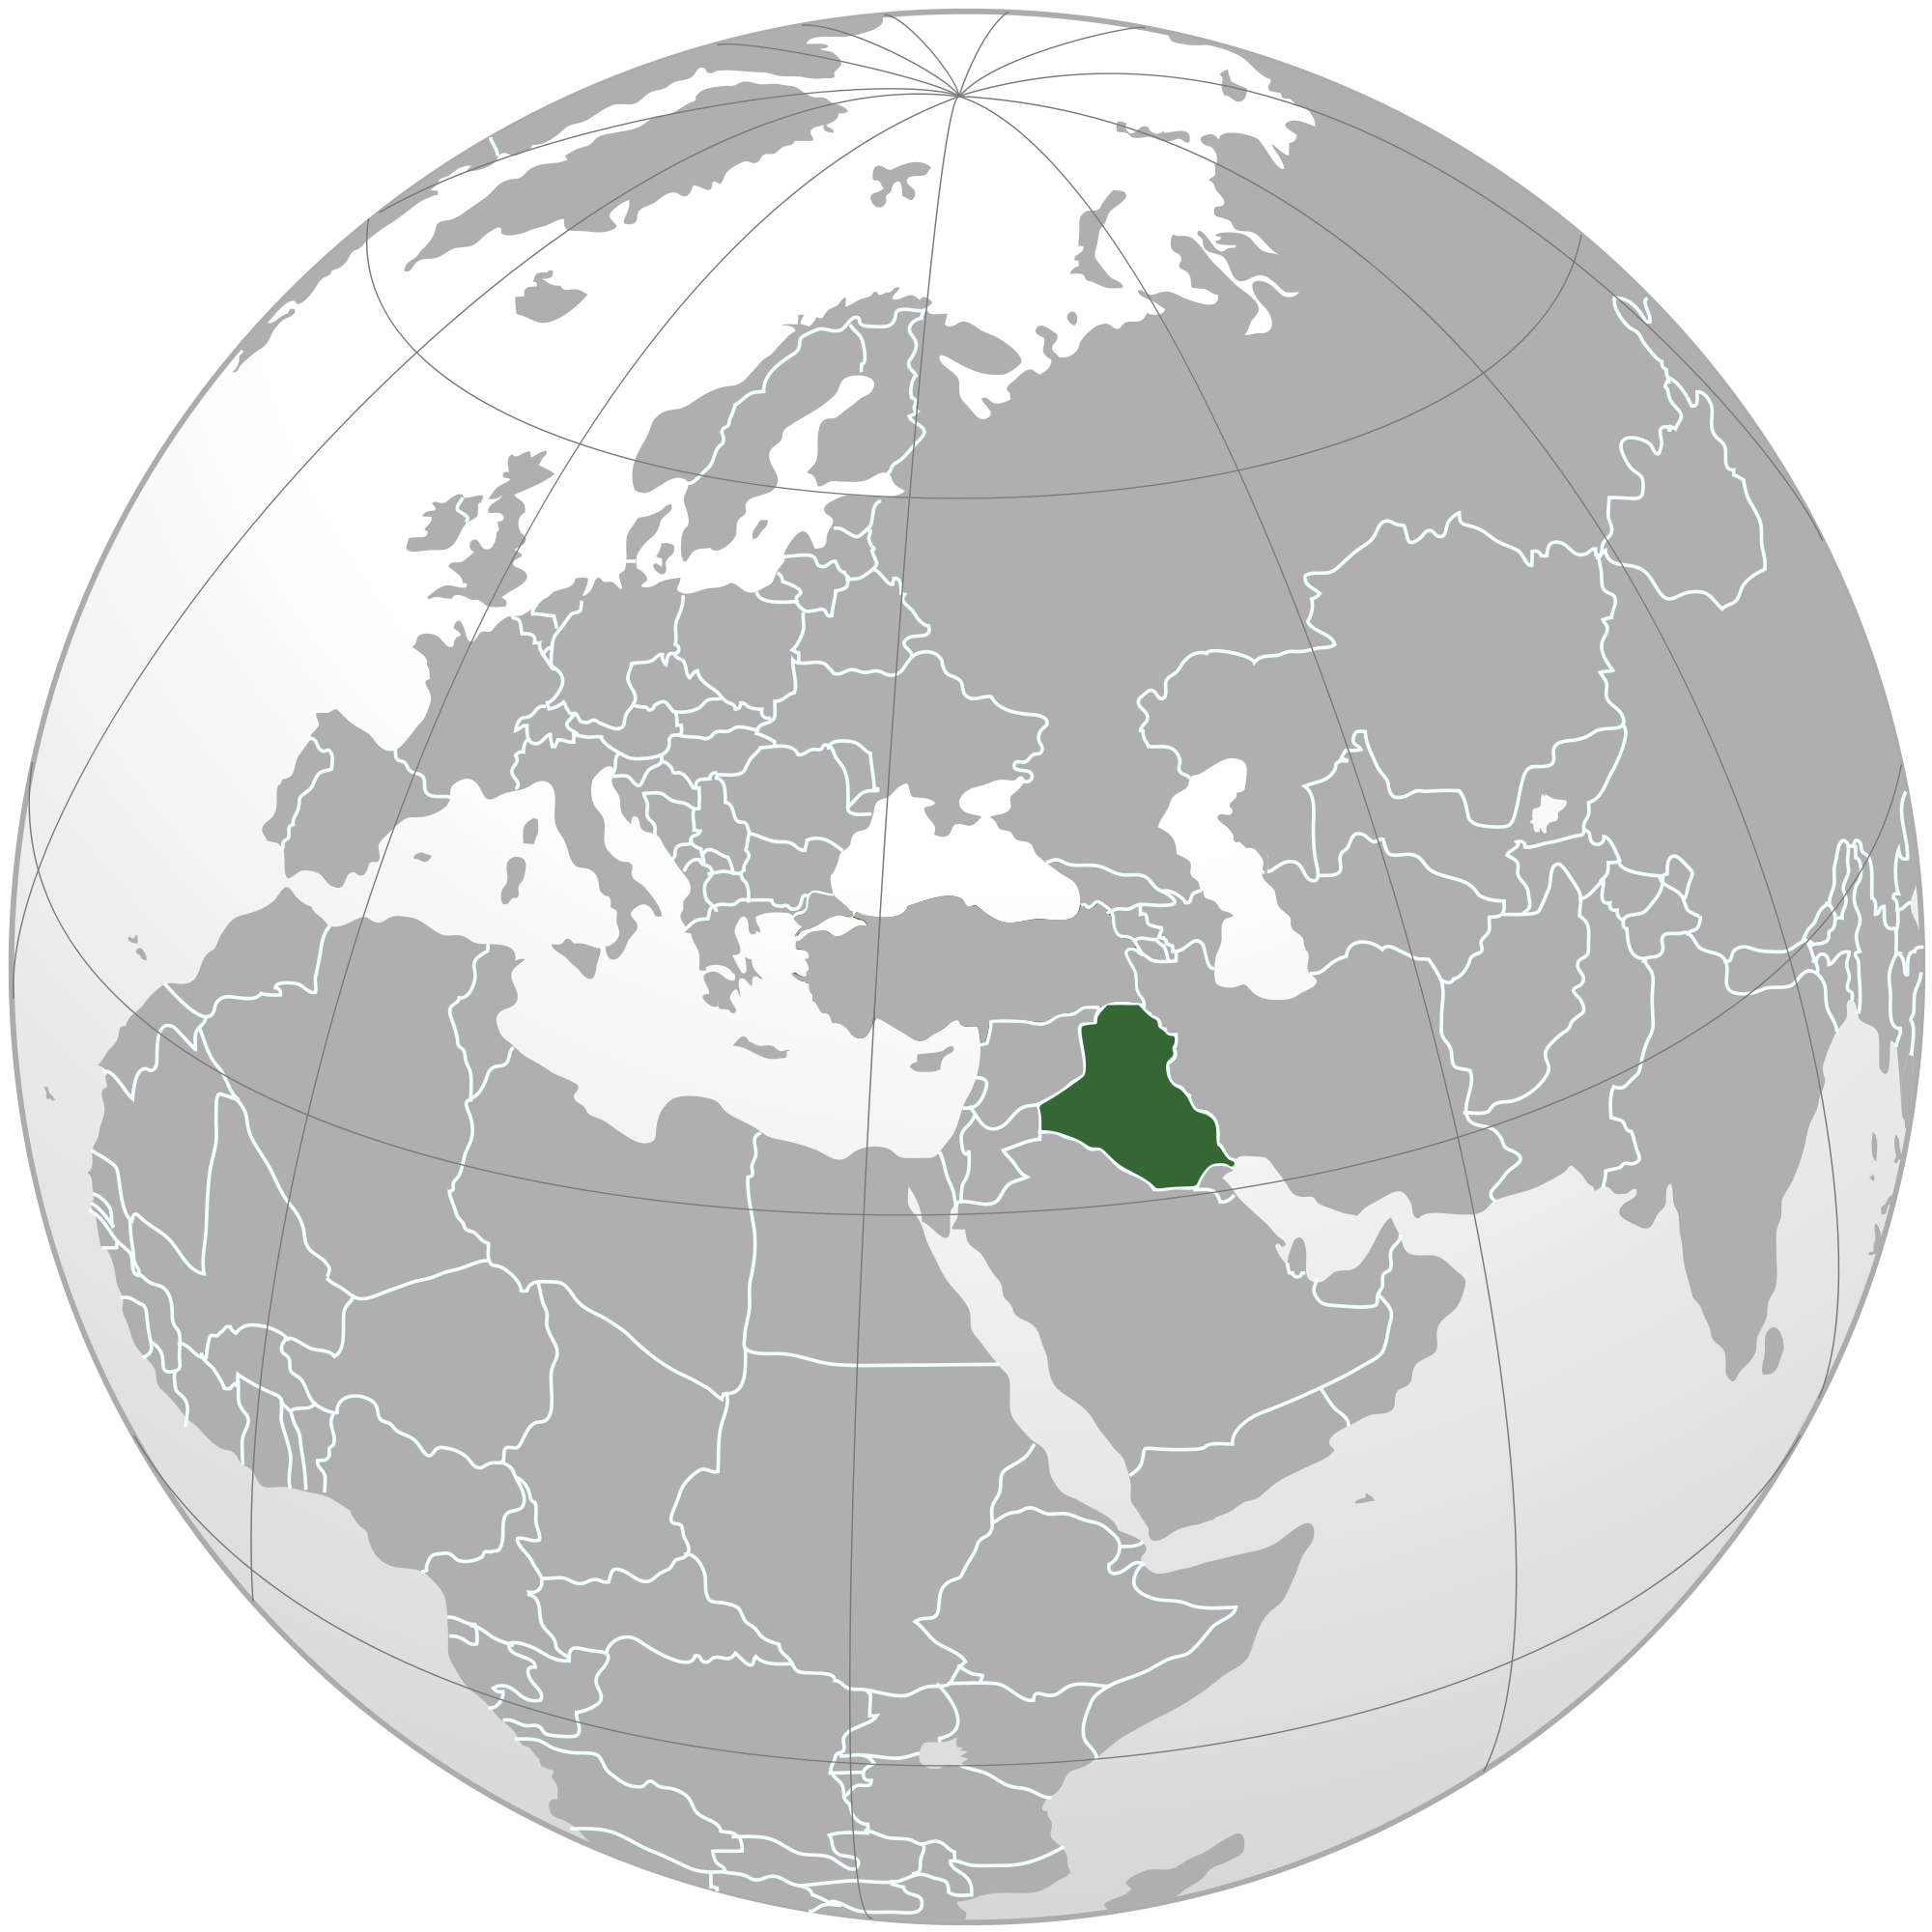 Location of the Iraq in the World Map